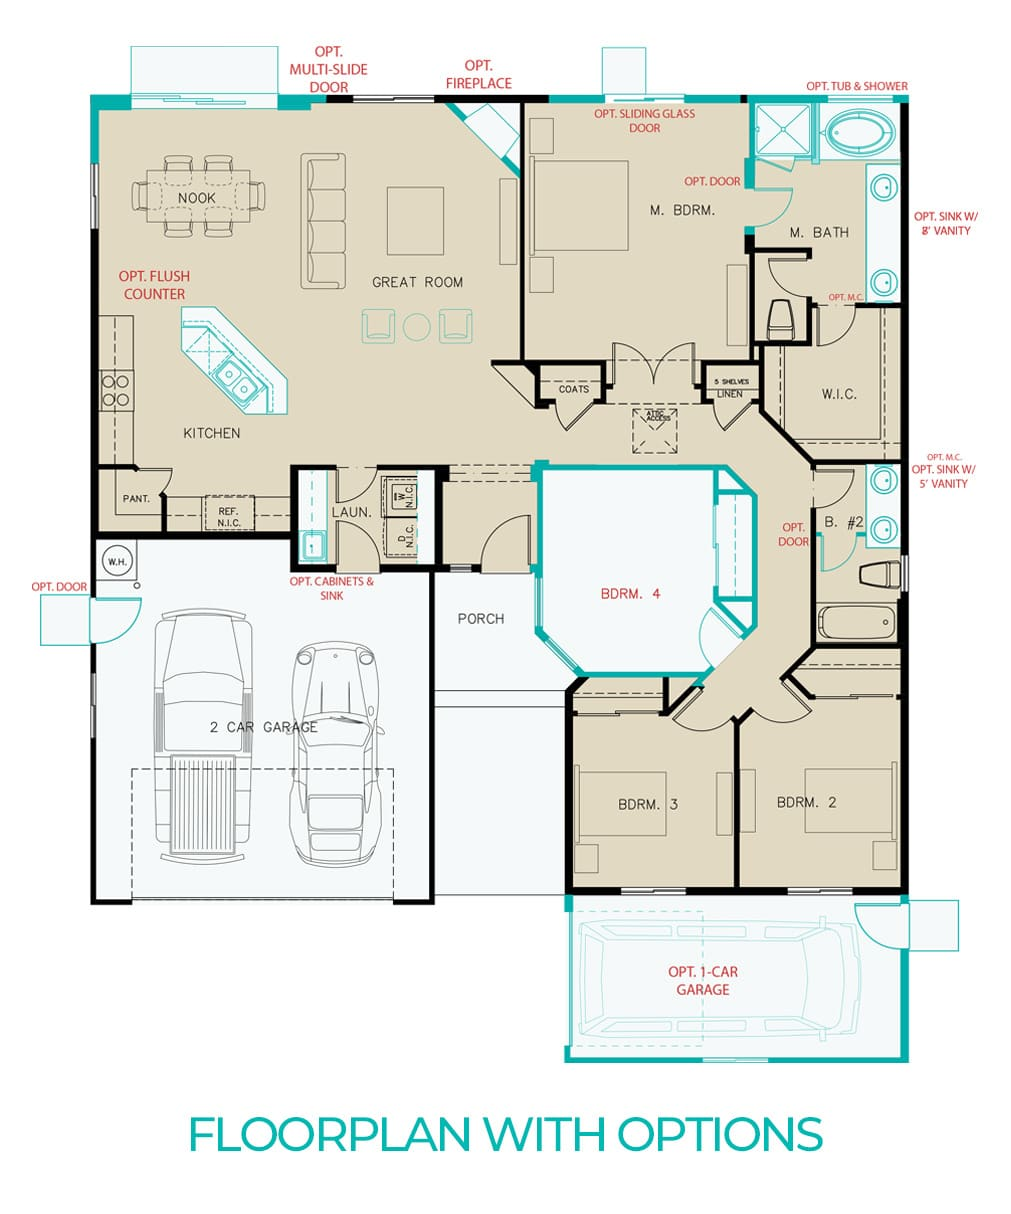 riverpark-floorplan-plan4-options-1-19-21